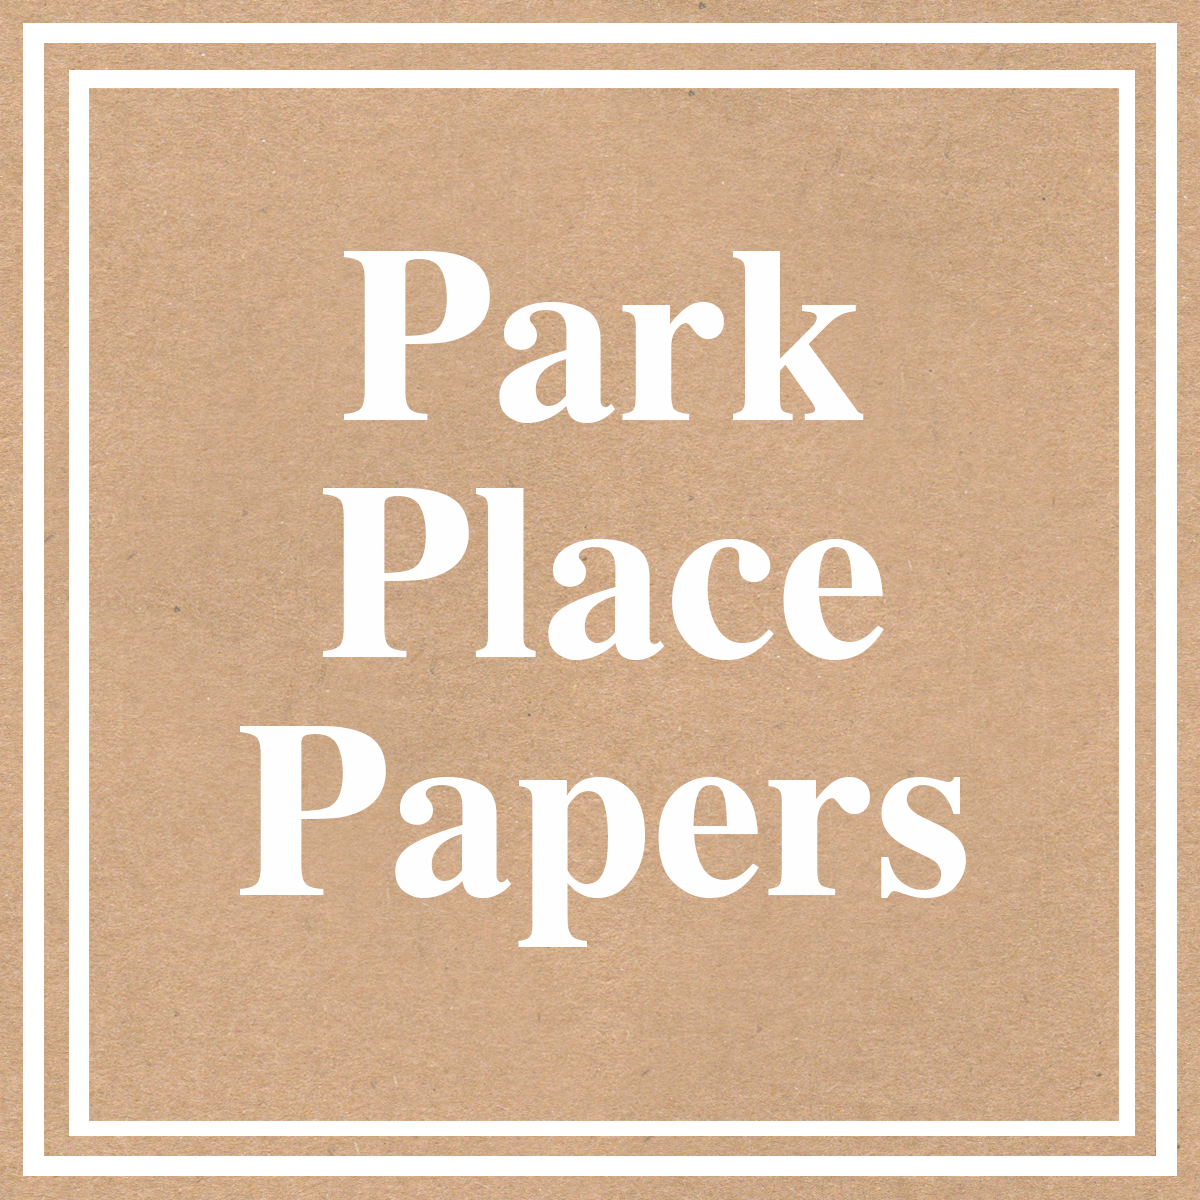 Park Place Papers